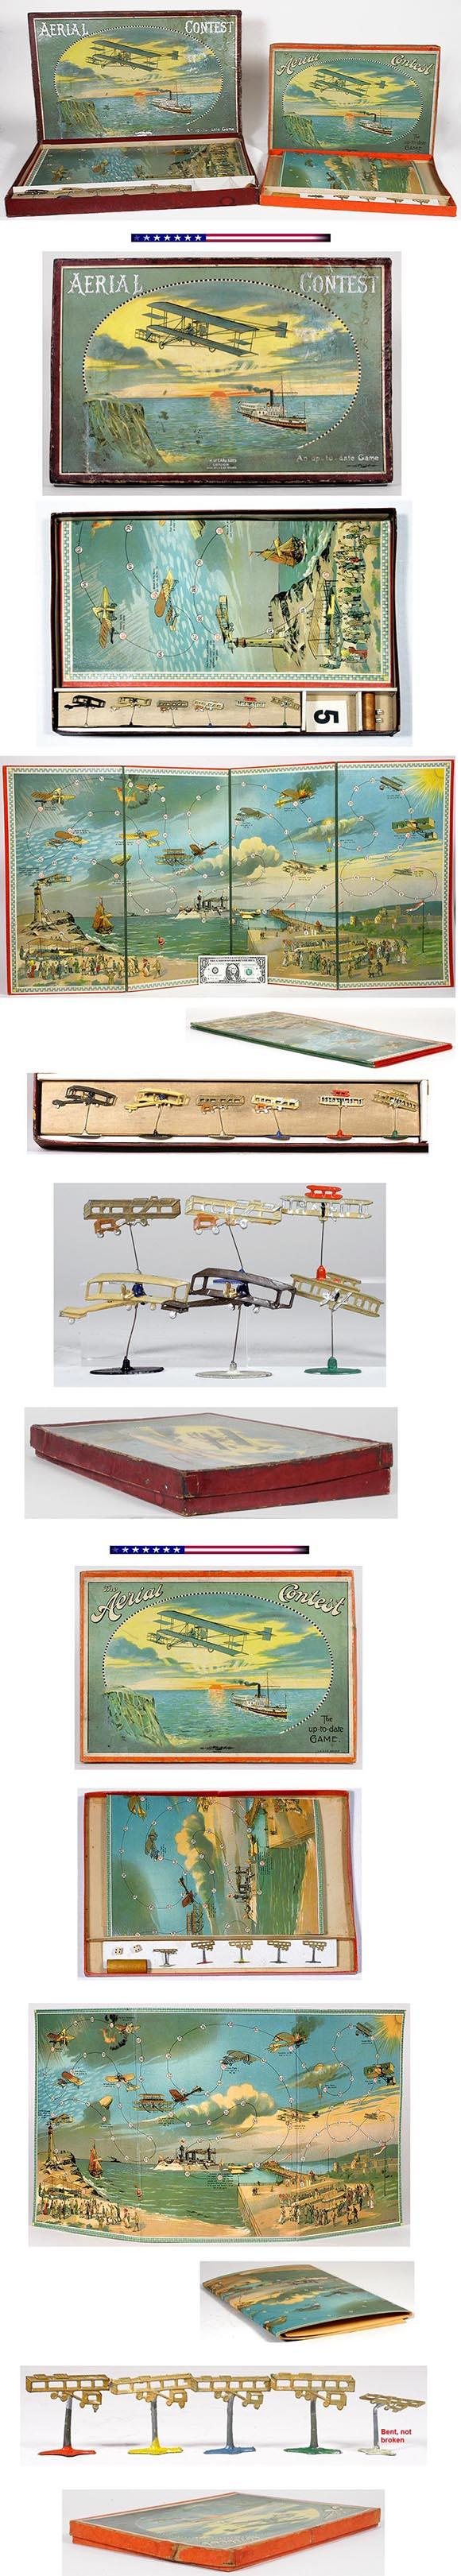 1907 Spear's Aerial Contest Games (2 versions) in Original Boxes